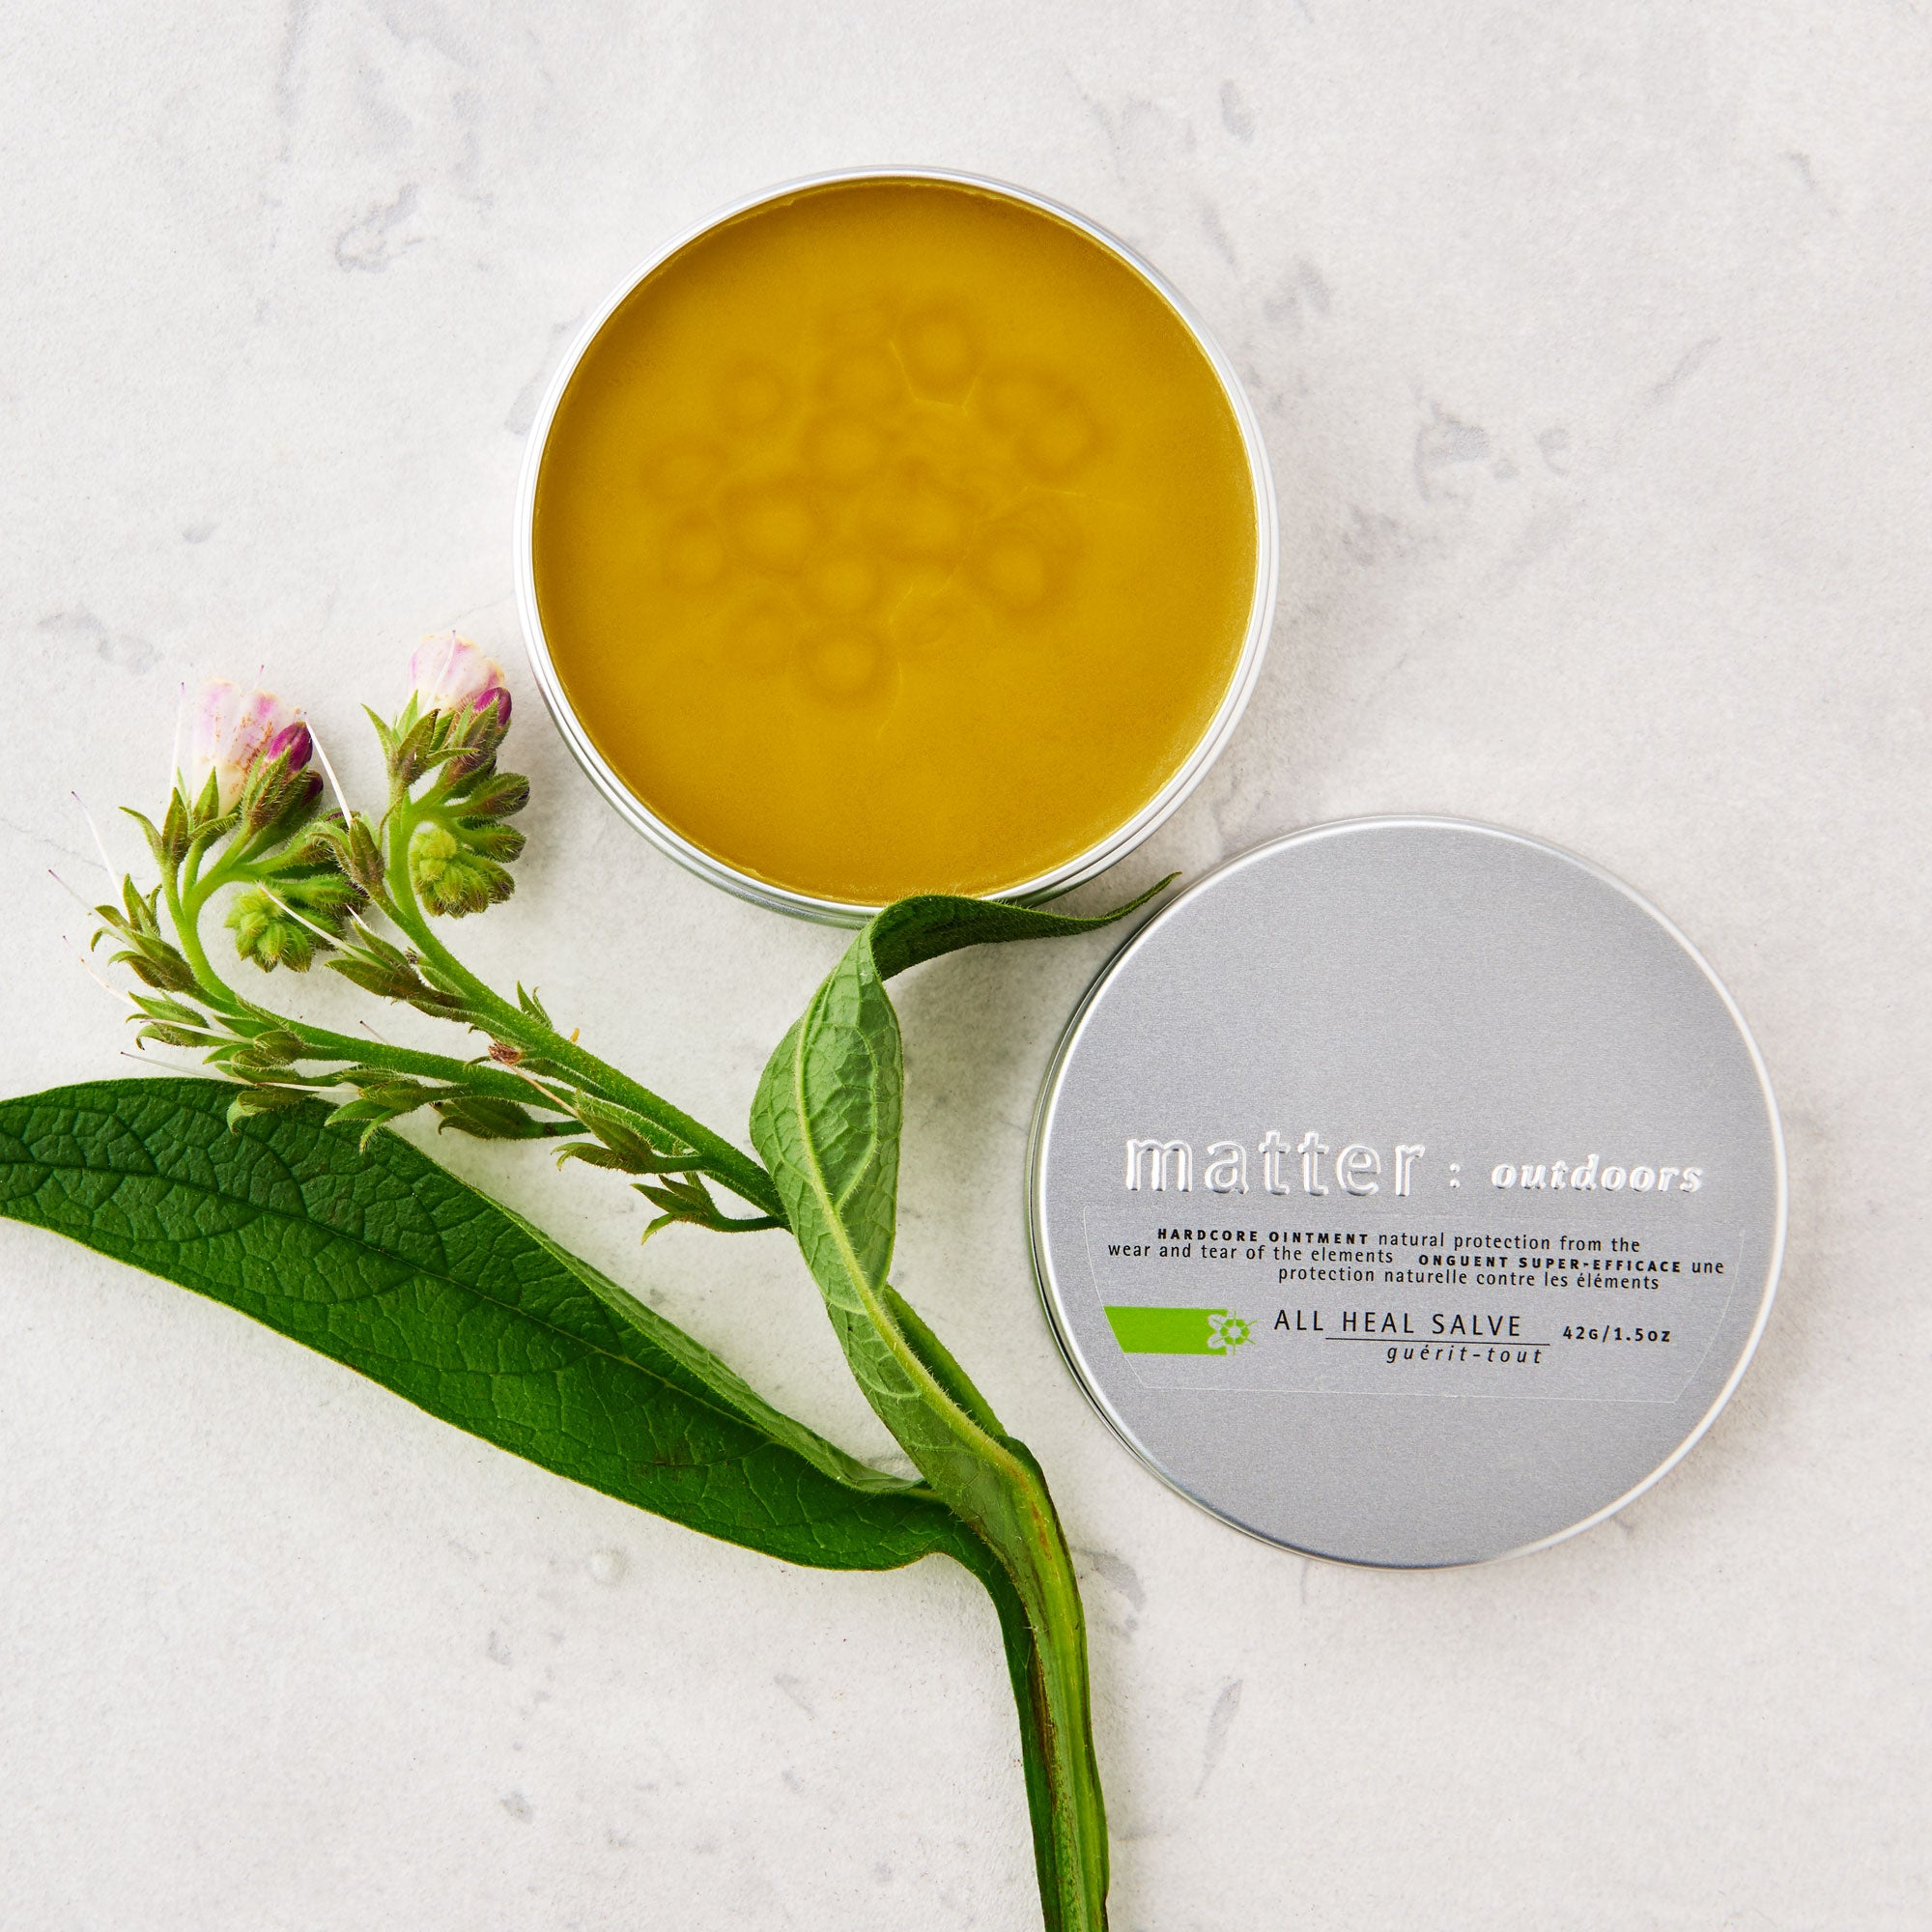 Made in Canada natural all heal salve.